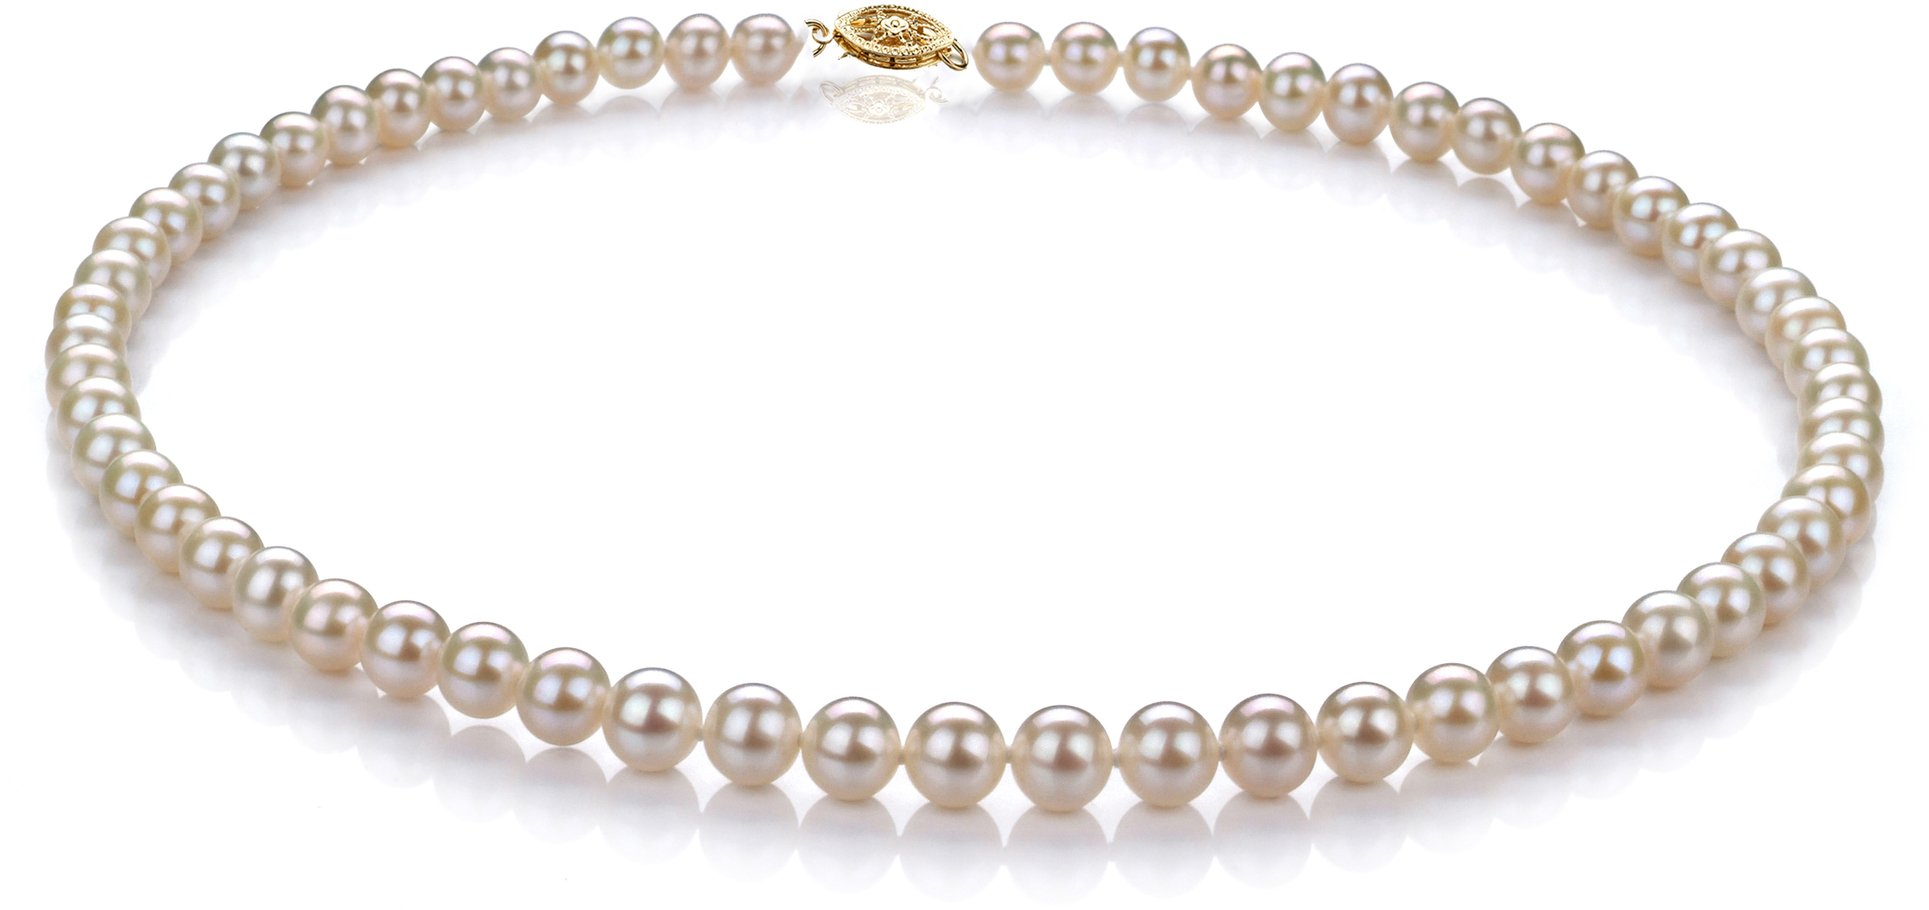 White 6-7mm Freshwater 10K Yellow Gold Cultured Pearl Necklace-18 in length